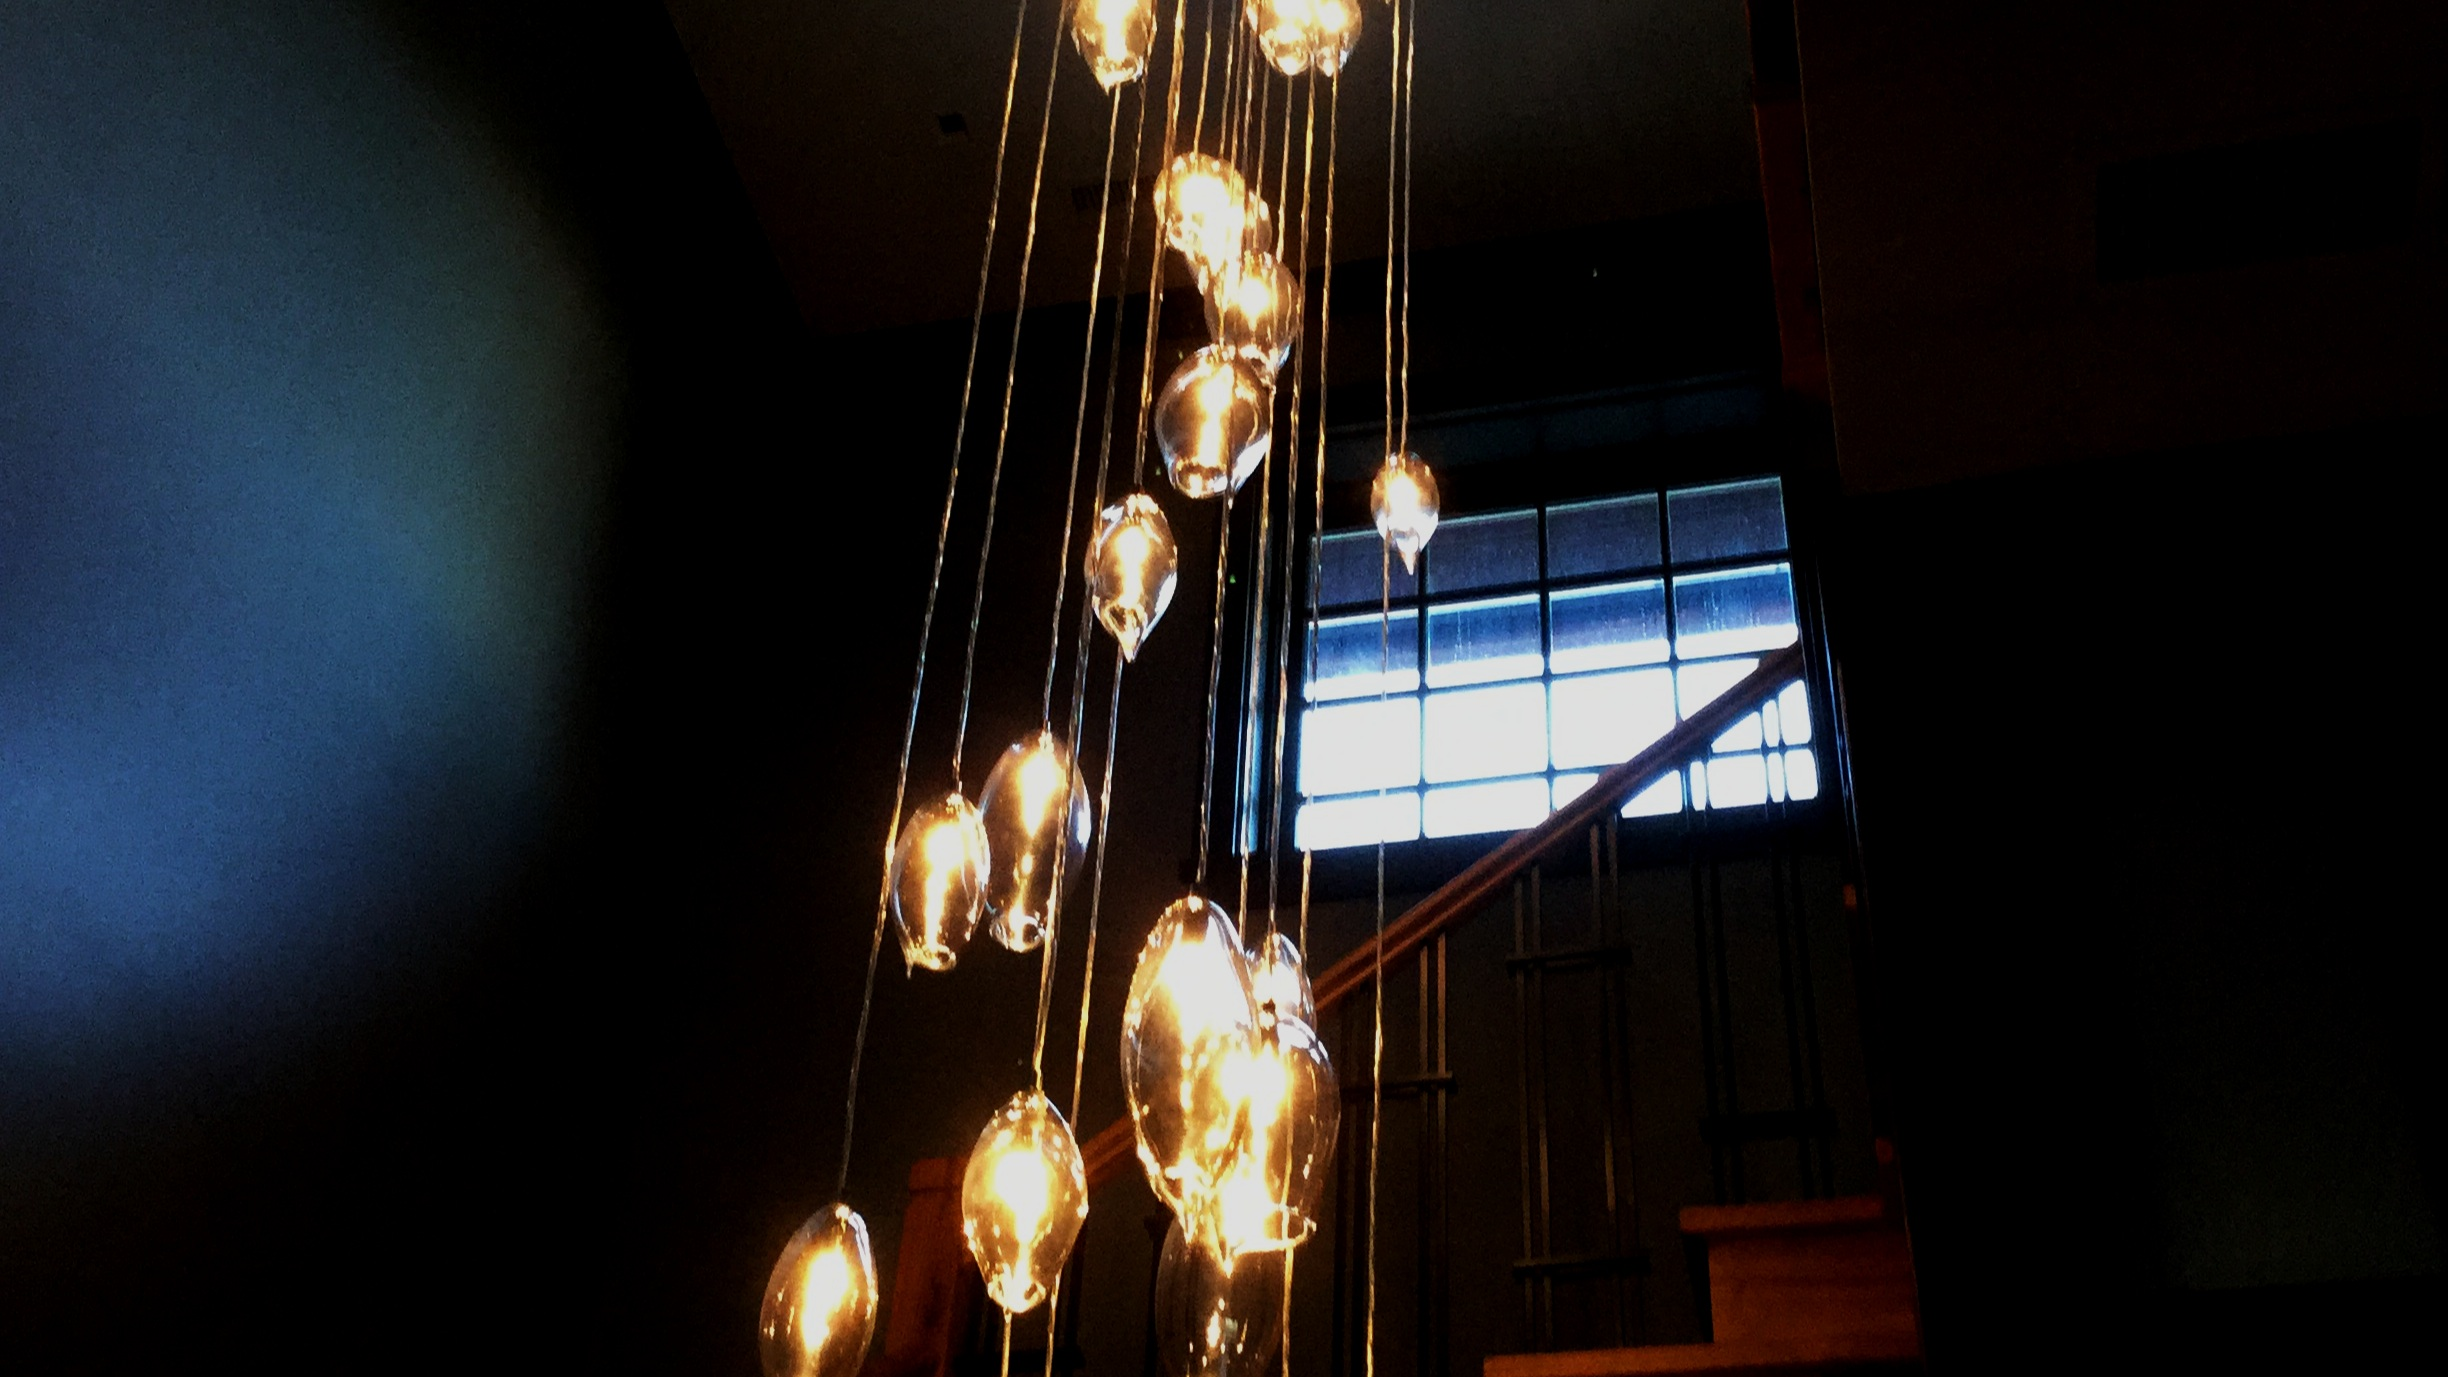 pROJECT: cUSTOM PENDANT CHANDELIER FOR NADLER aRCHITECTS